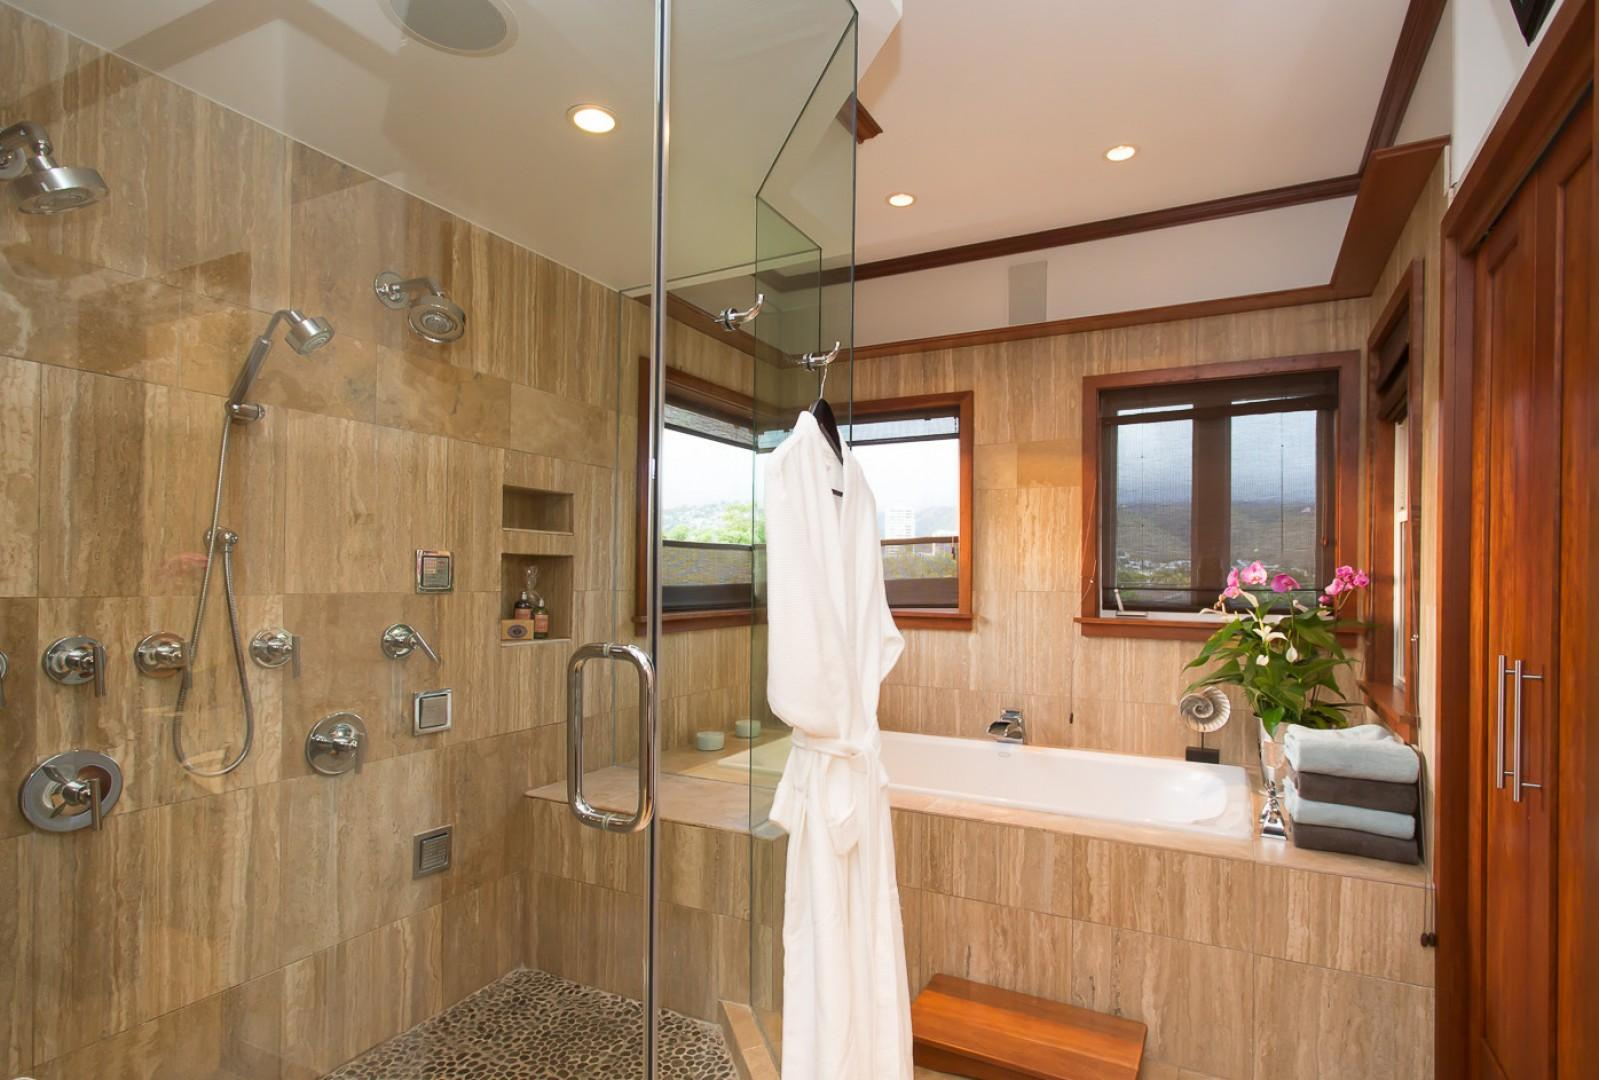 The master bathroom has mountain and city light views from the second floor.